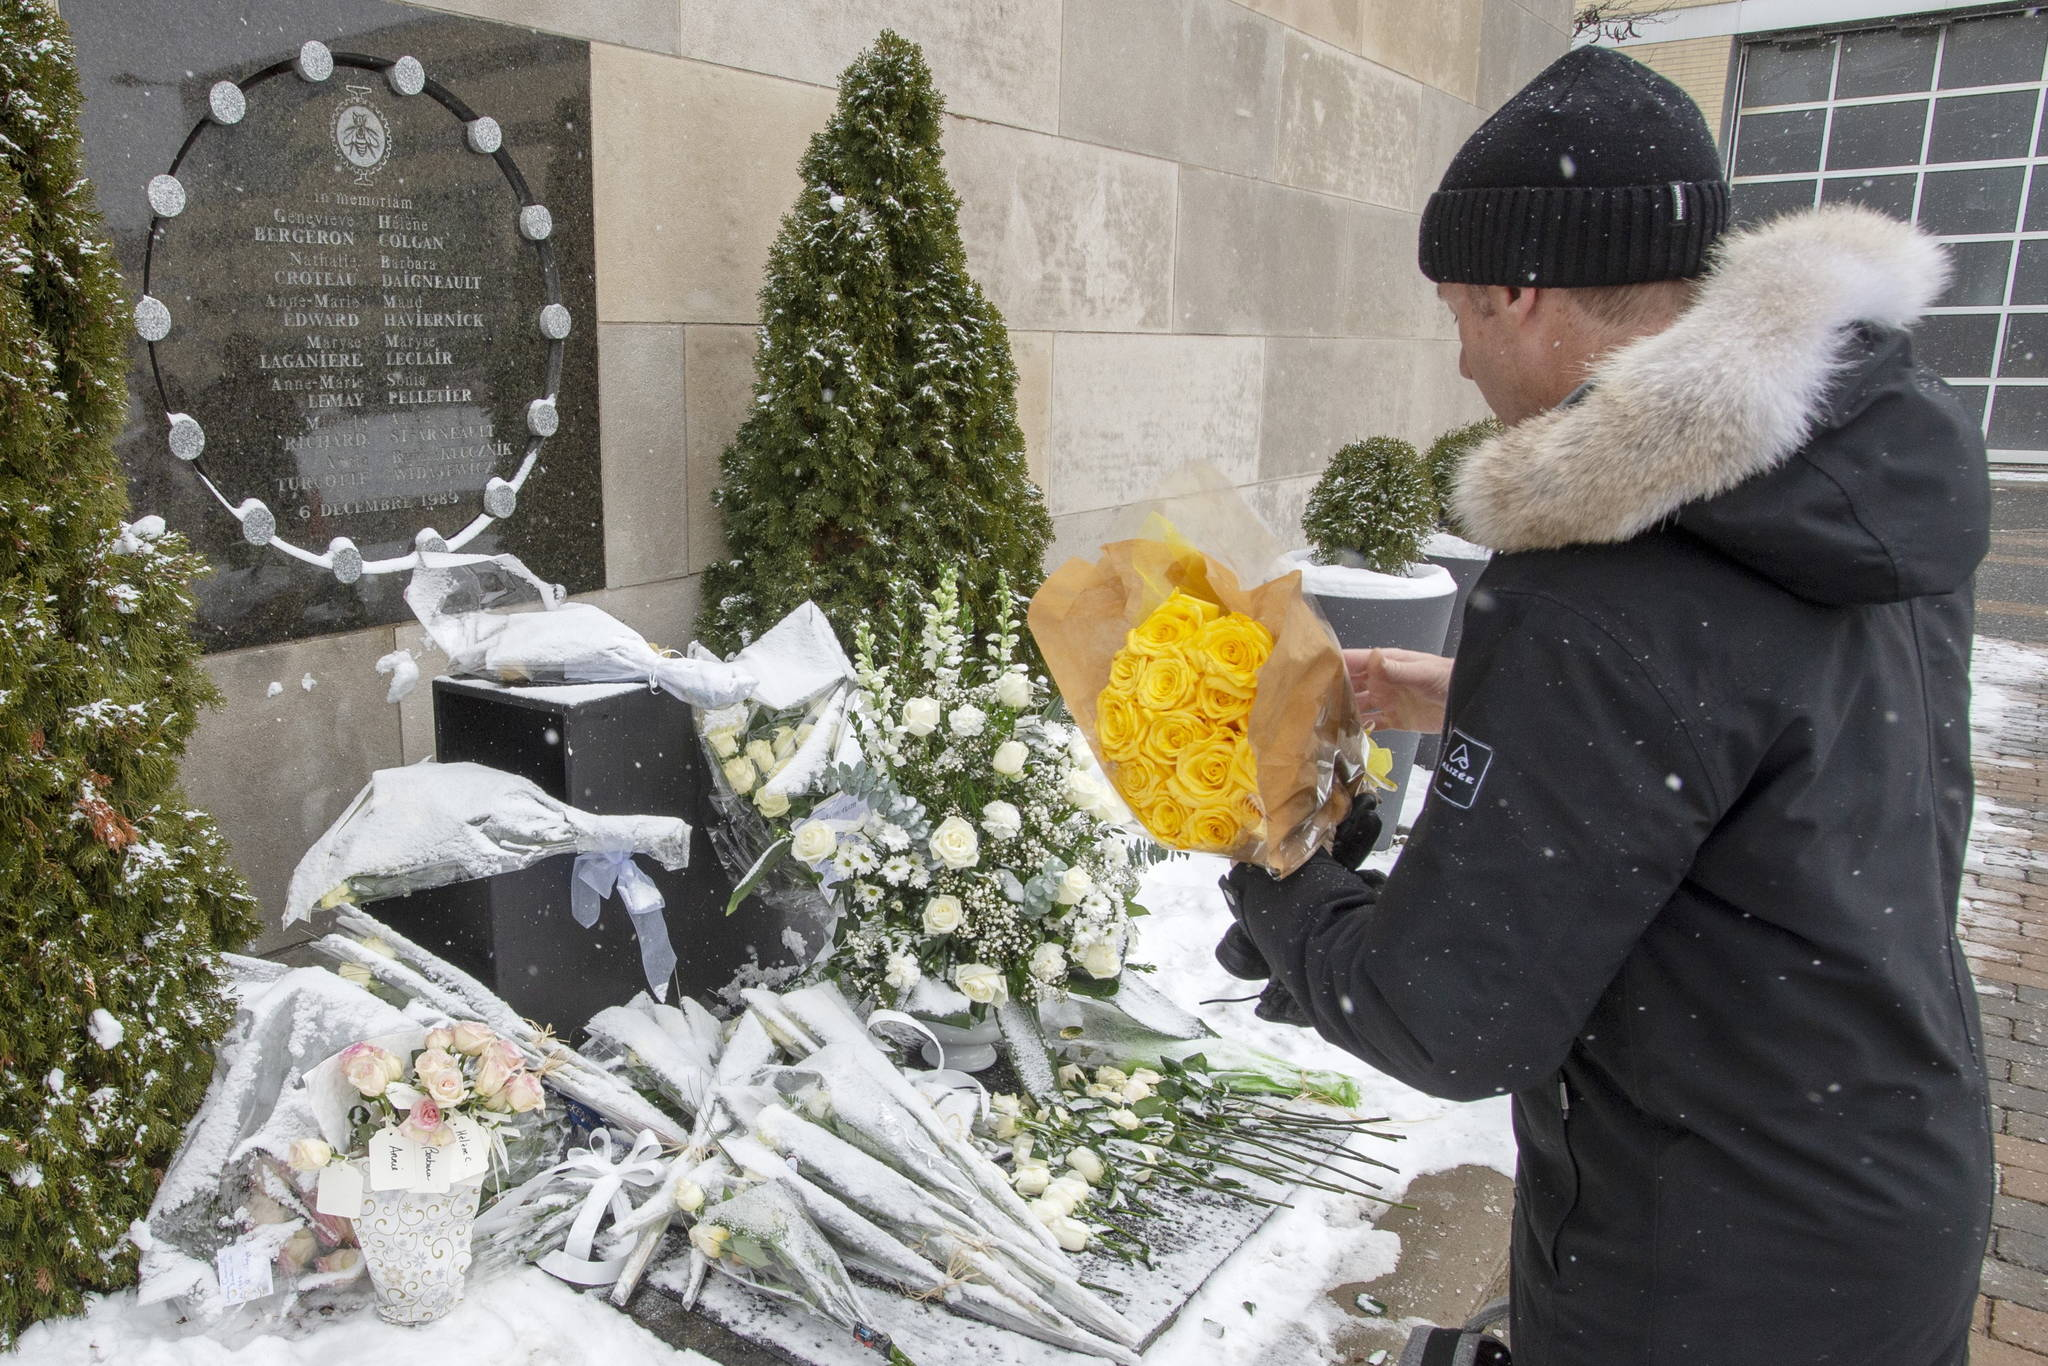 Former student Richard Gregoire places fourteen roses at the school's memorial to mark the 30th anniversary of the 1989 Ecole Polytechnique attack where a lone gunman killed 14 female students Friday, December 6, 2019 in Montreal. THE CANADIAN PRESS/Ryan Remiorz